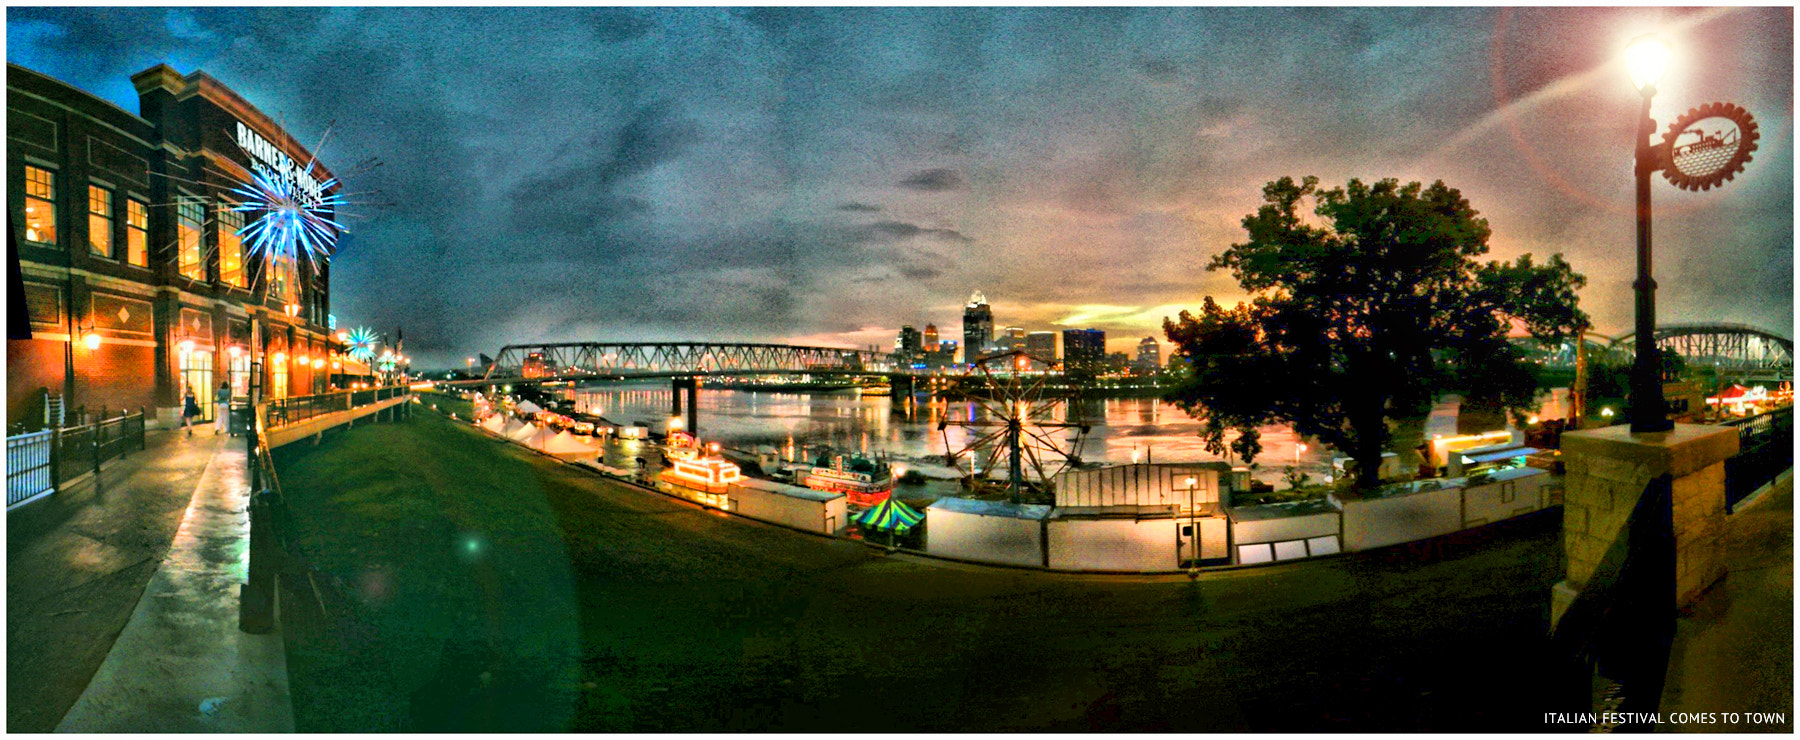 Photograph // ITIALIANFEST COMES TO TOWN // by Richard Cawood on 500px